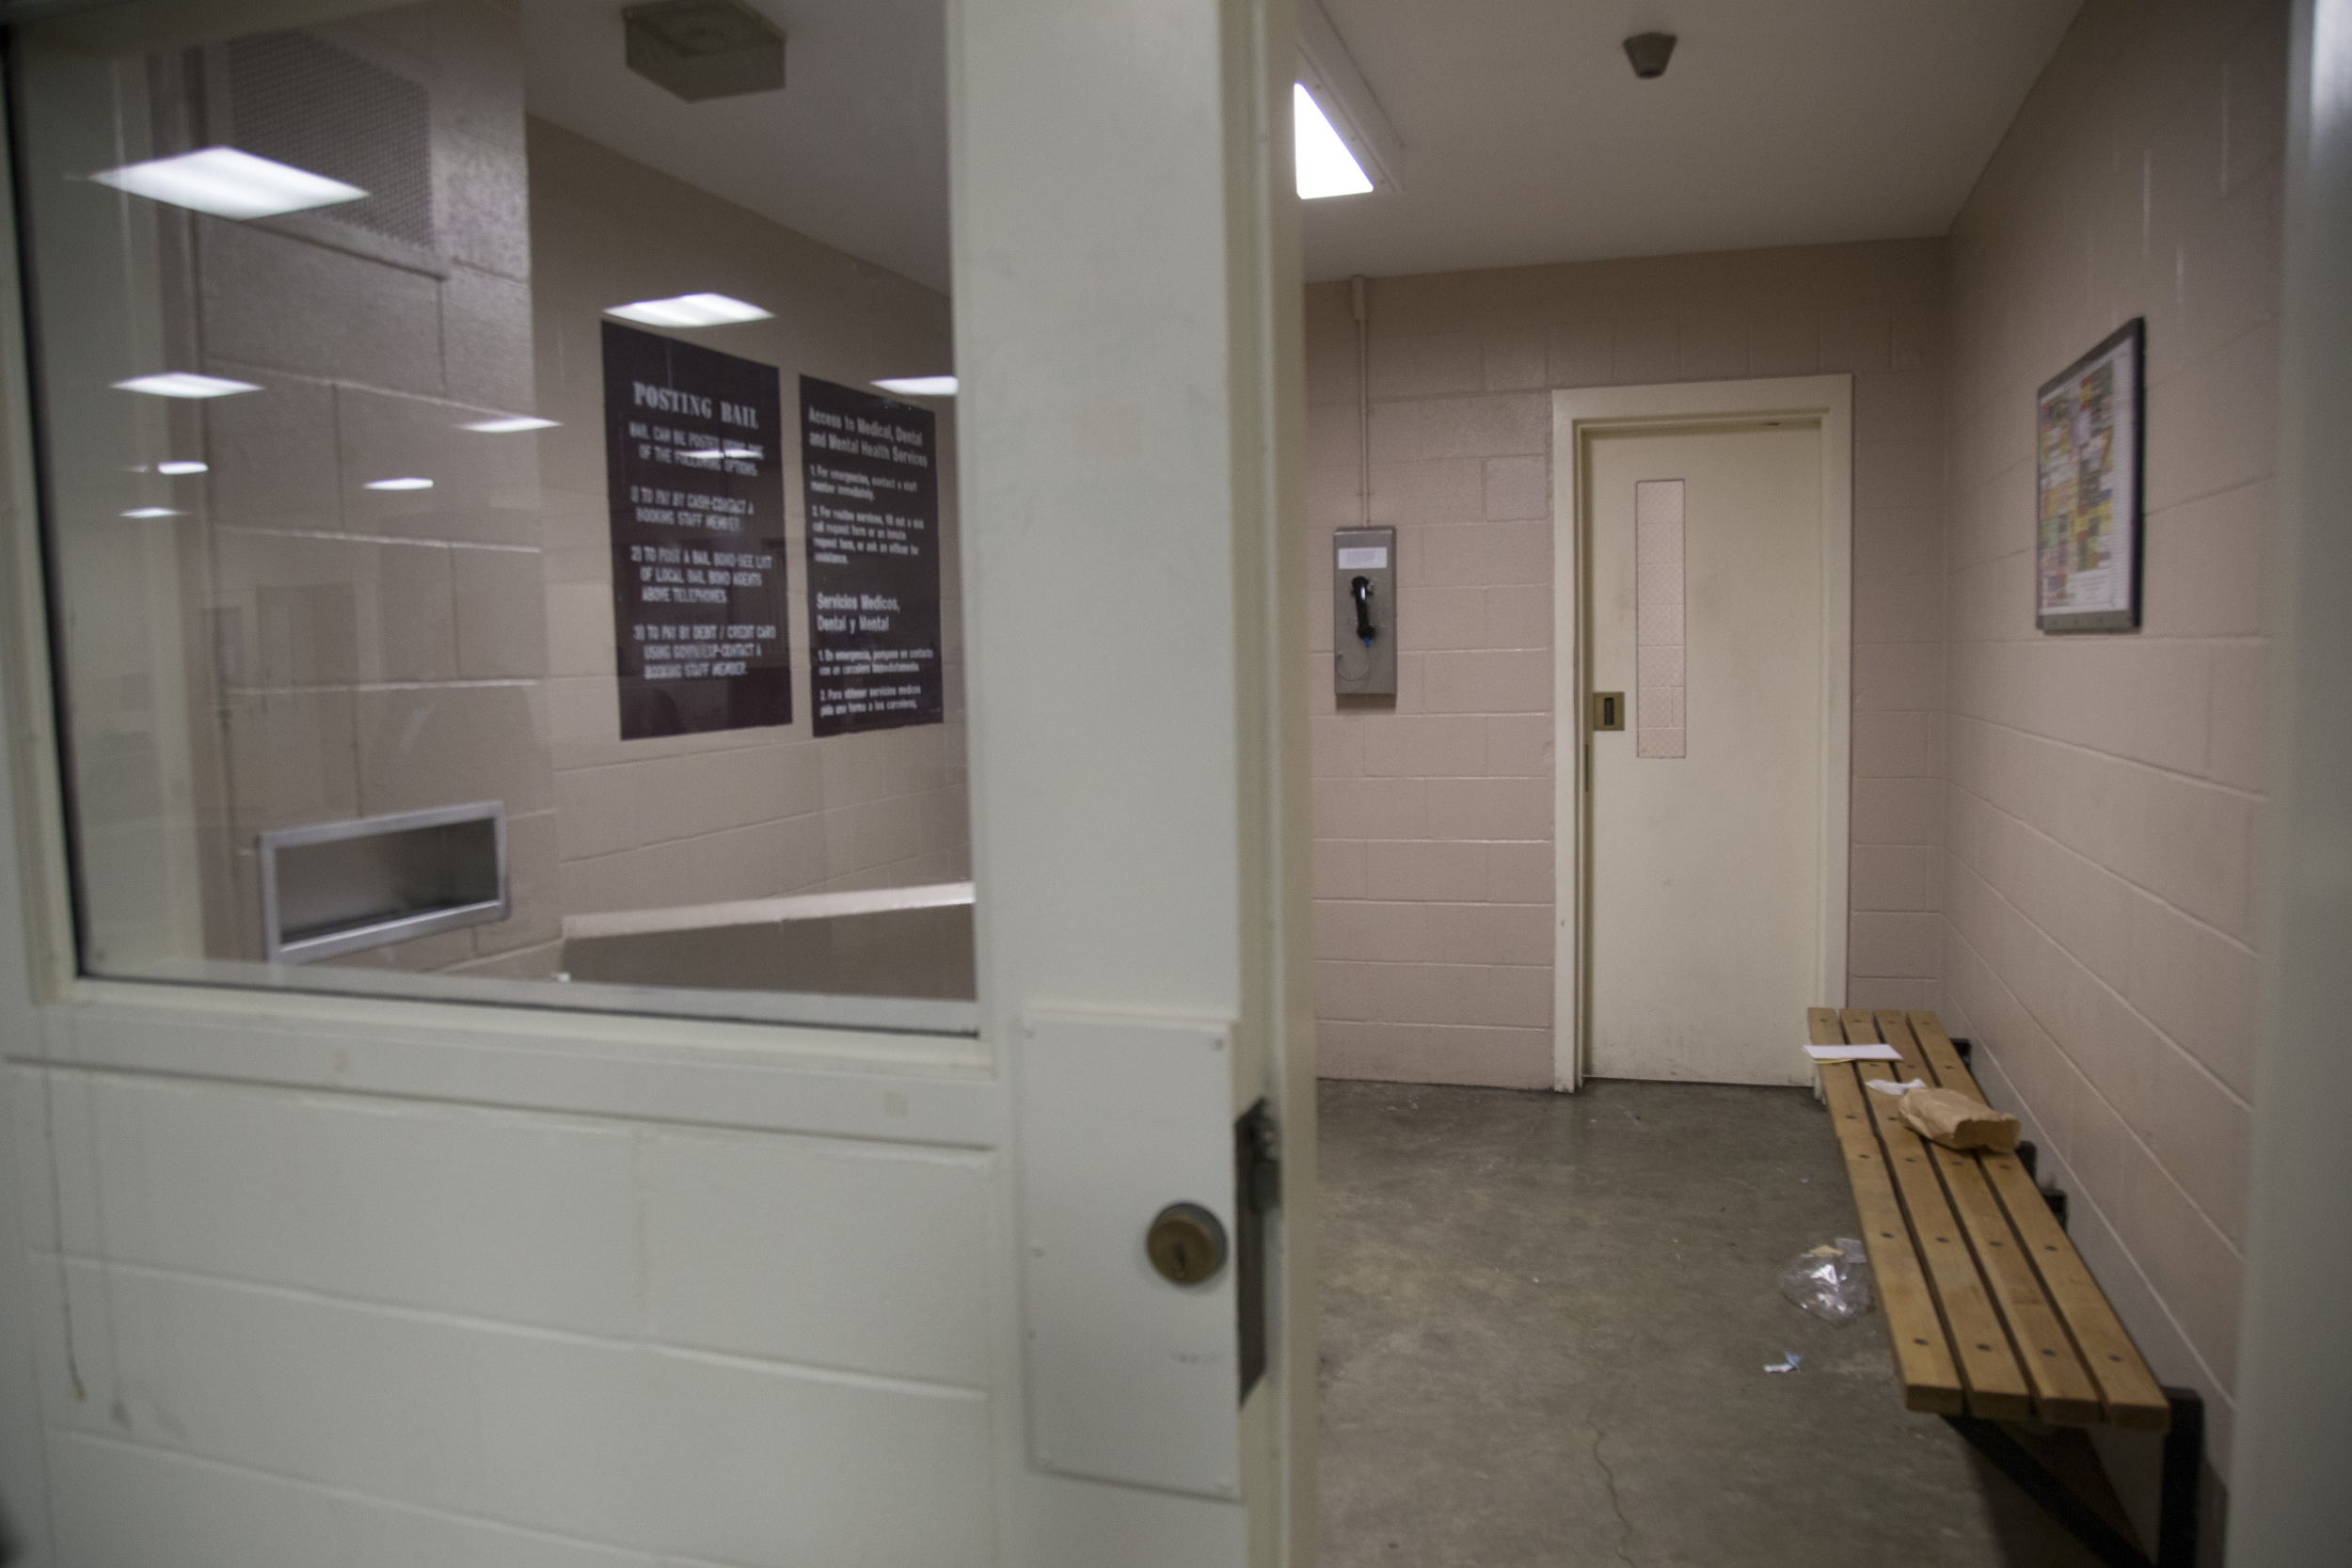 Signs inform inmates about their rights to health and mental health treatment in Sonoma County Main Jail's booking area.